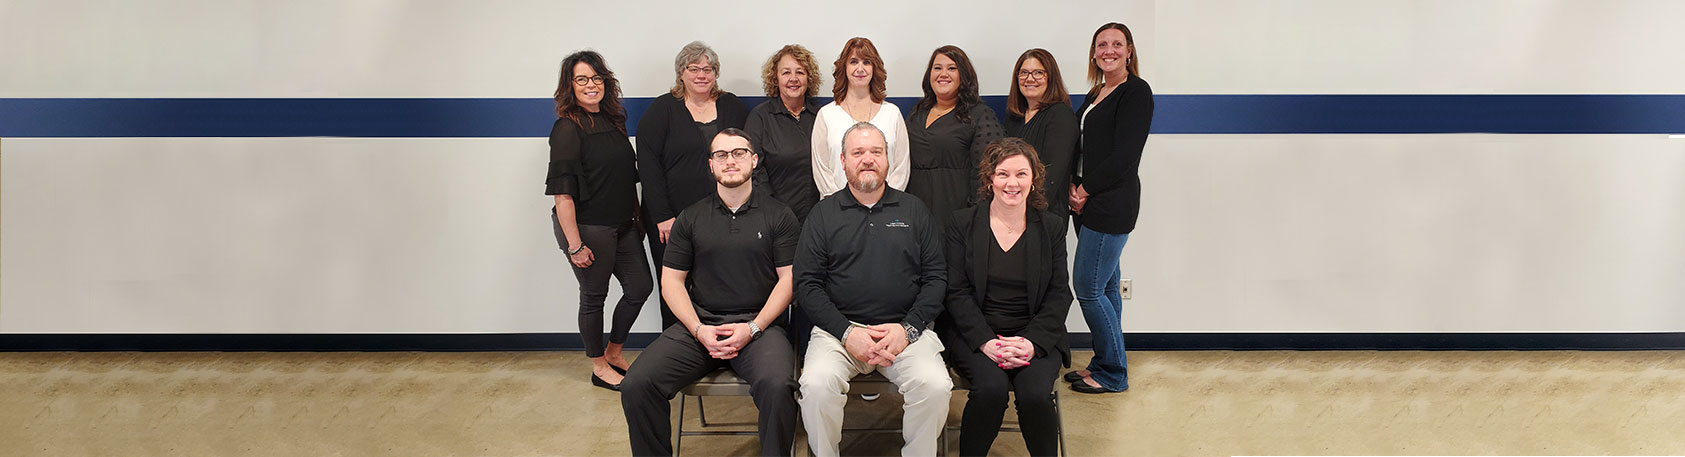 Staff Banner - Clear Choice Hearing Aid Centers